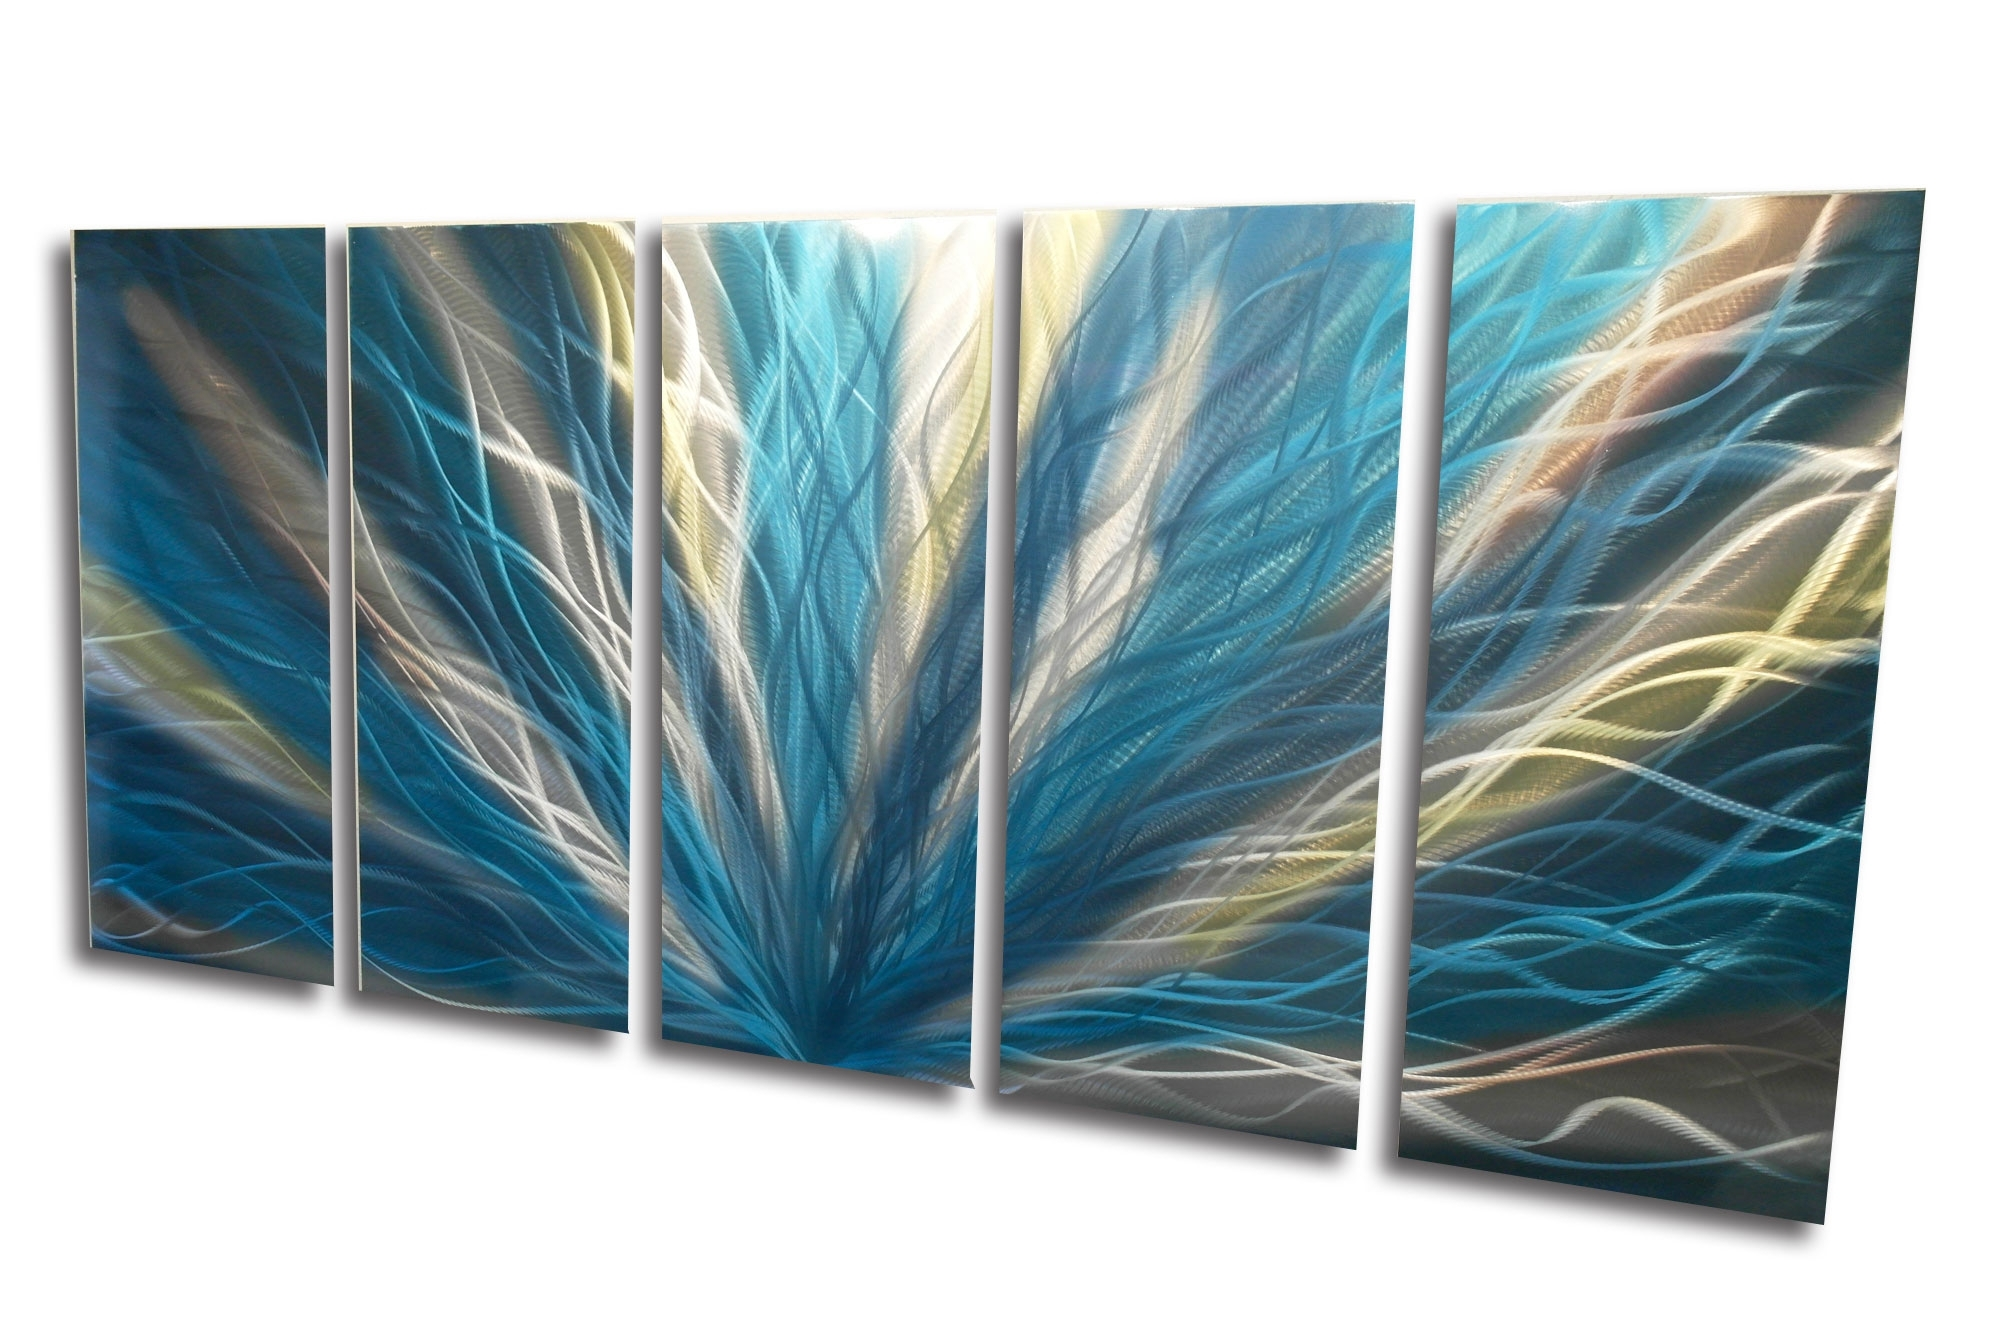 Most Up To Date Home · Inspiring Art Gallery · Online Store Poweredstorenvy In Blue And Green Wall Art (View 8 of 15)